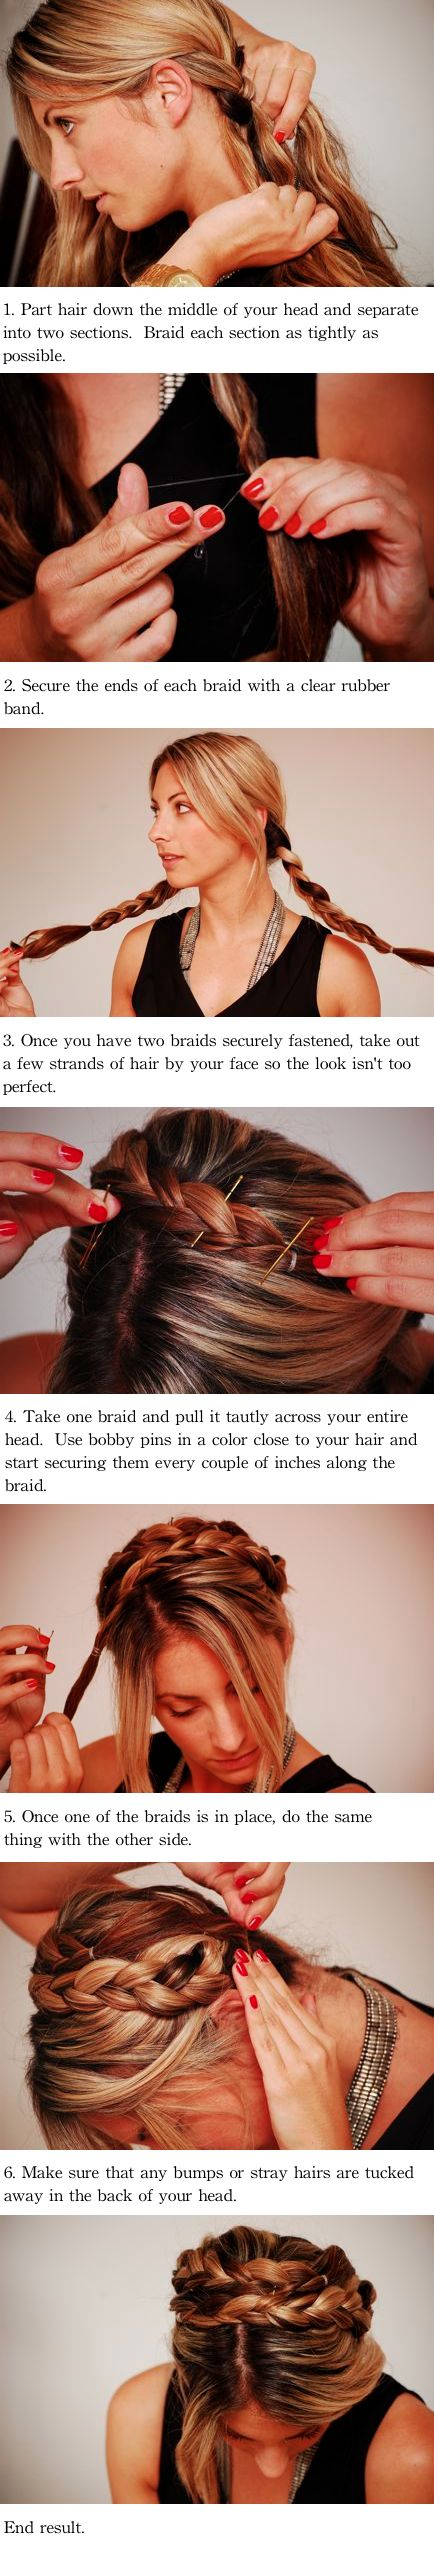 braided updo how-to #hair #DIY #tutorial